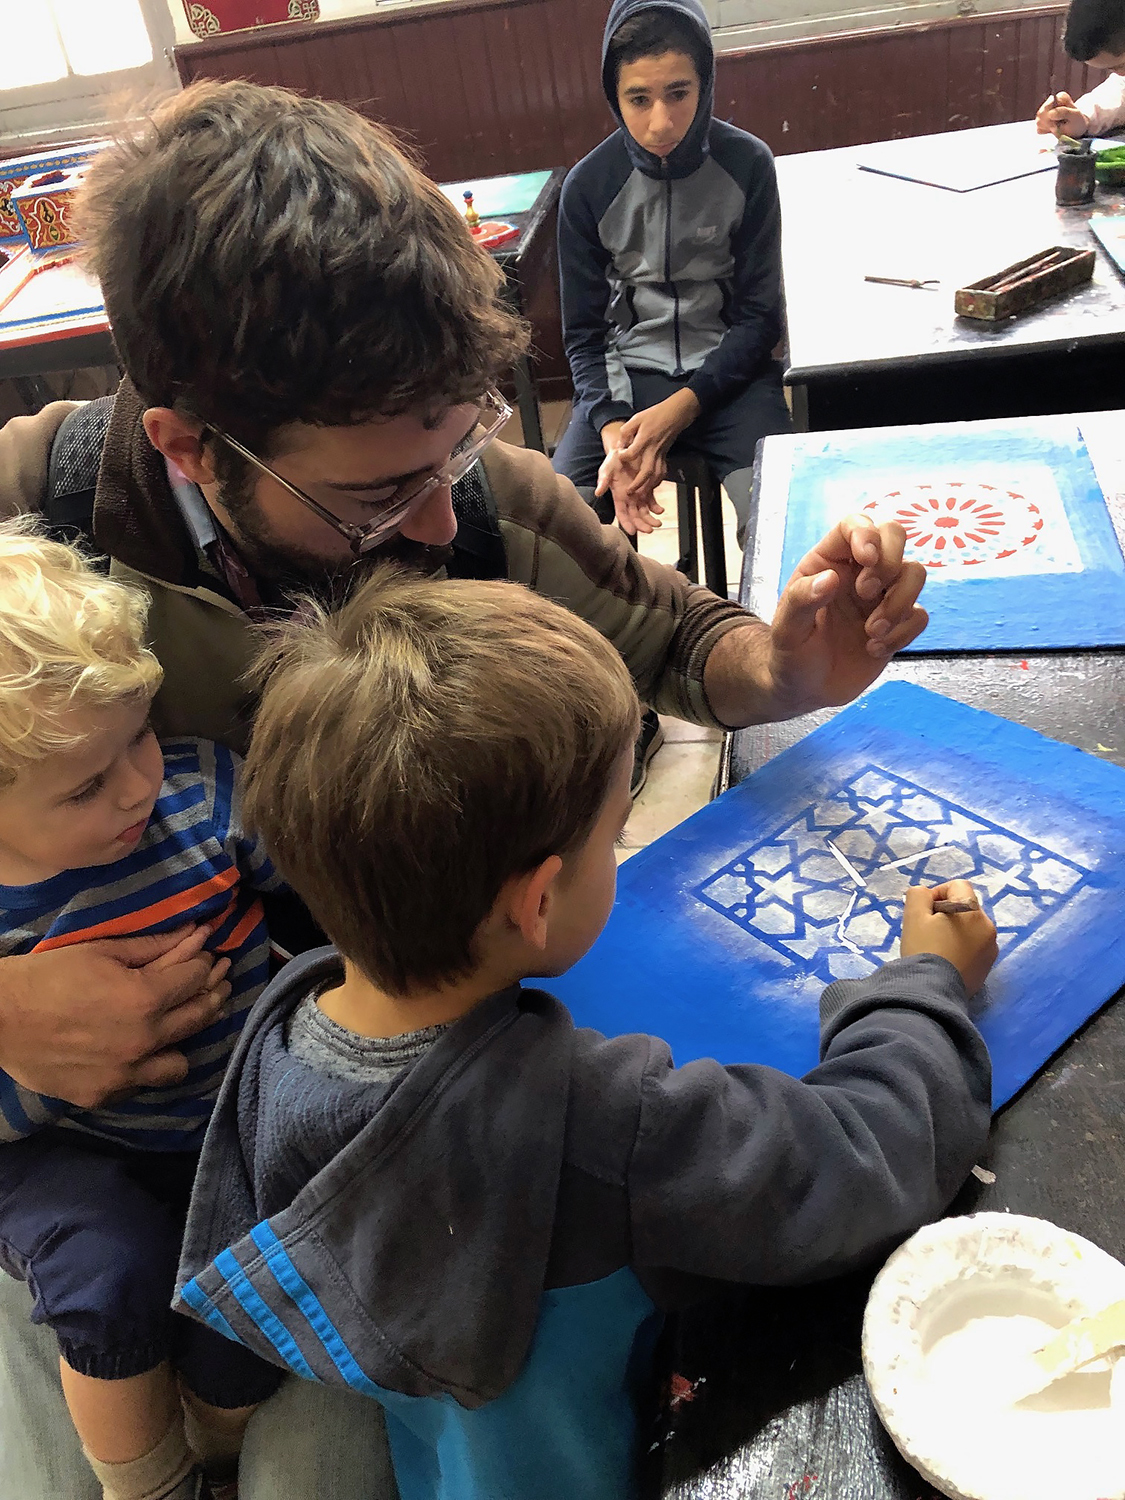 The boys and I get a lesson in Moroccan patterns from the students learning decorative painting